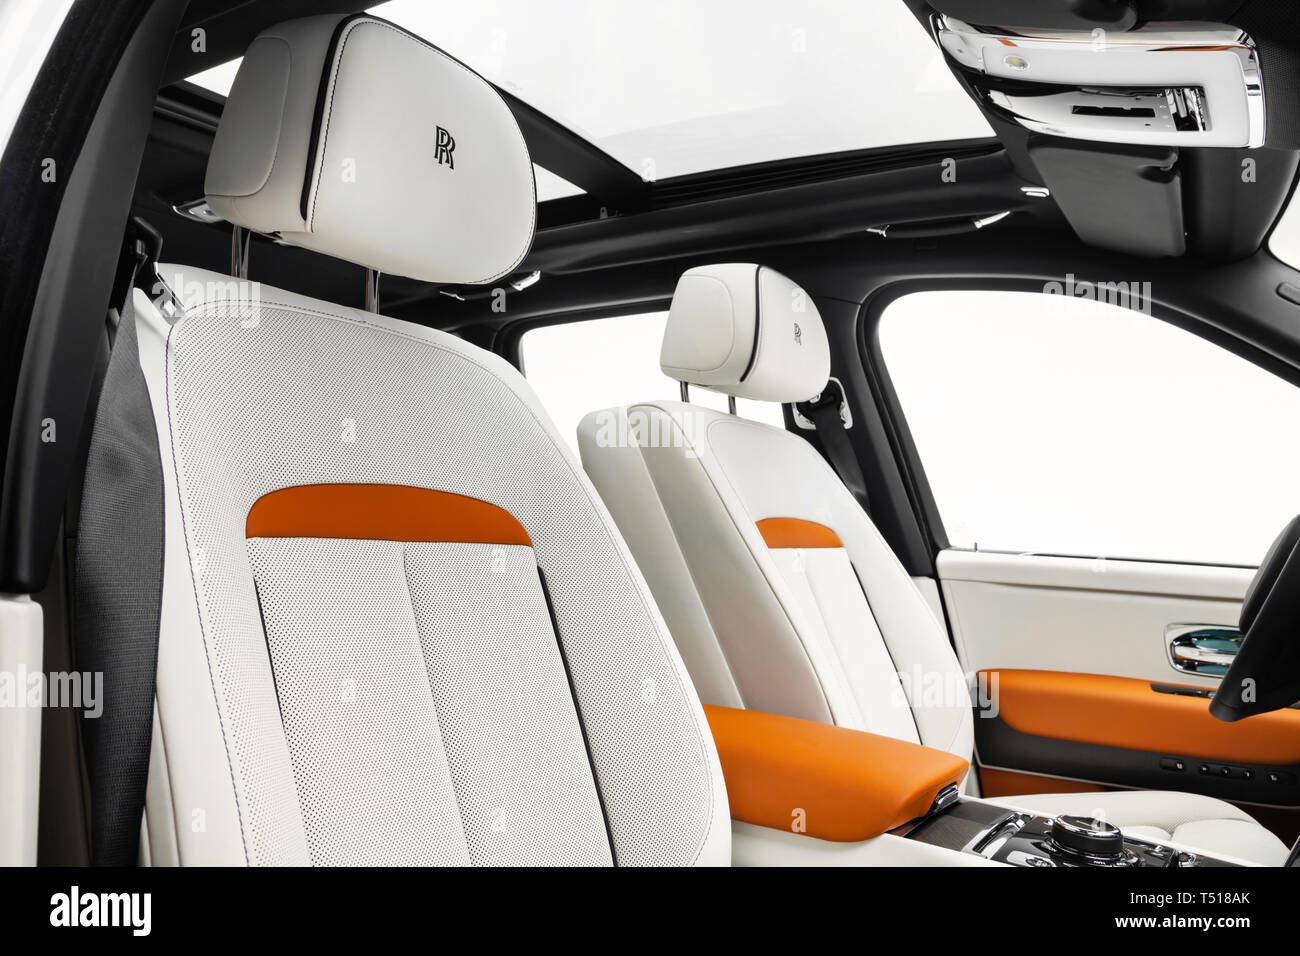 2019 Rolls Royce Cullinan Stock Photo Alamy